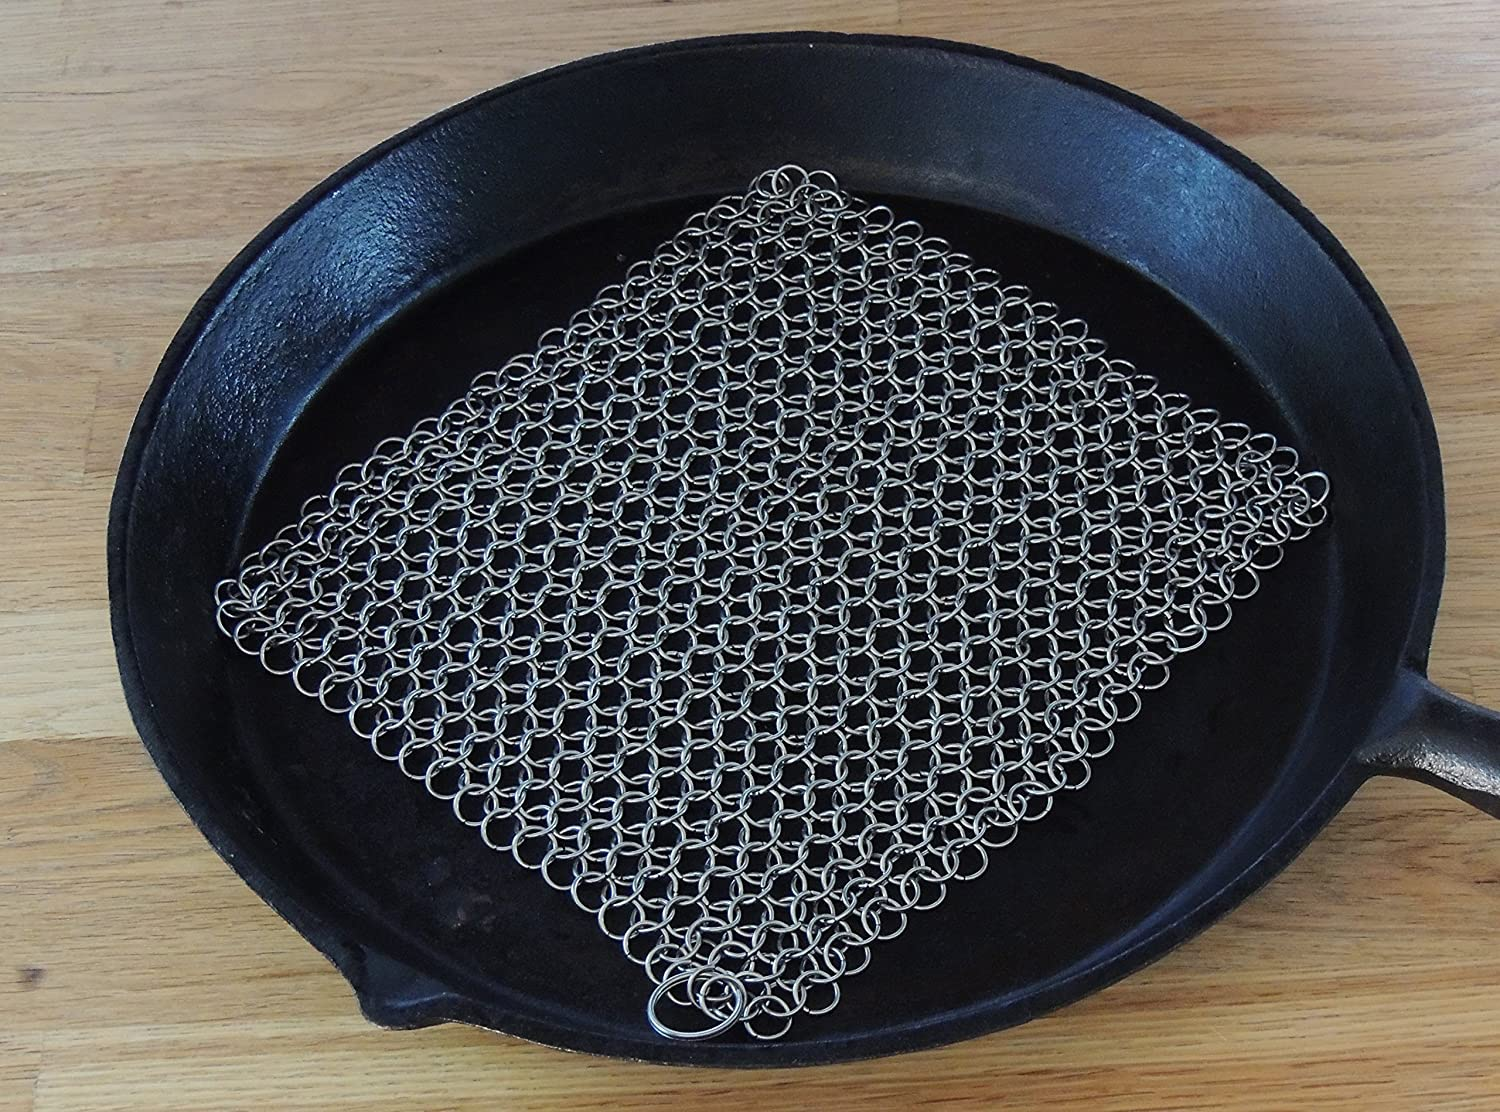 Cheap Amazoncom Cast Iron Cleaner And Scrubber By Kche Chef Xl X Inch  Premium Stainless Steel Chainmail Scrubber Kitchen U Dining With  Grillplatte Kche With ...